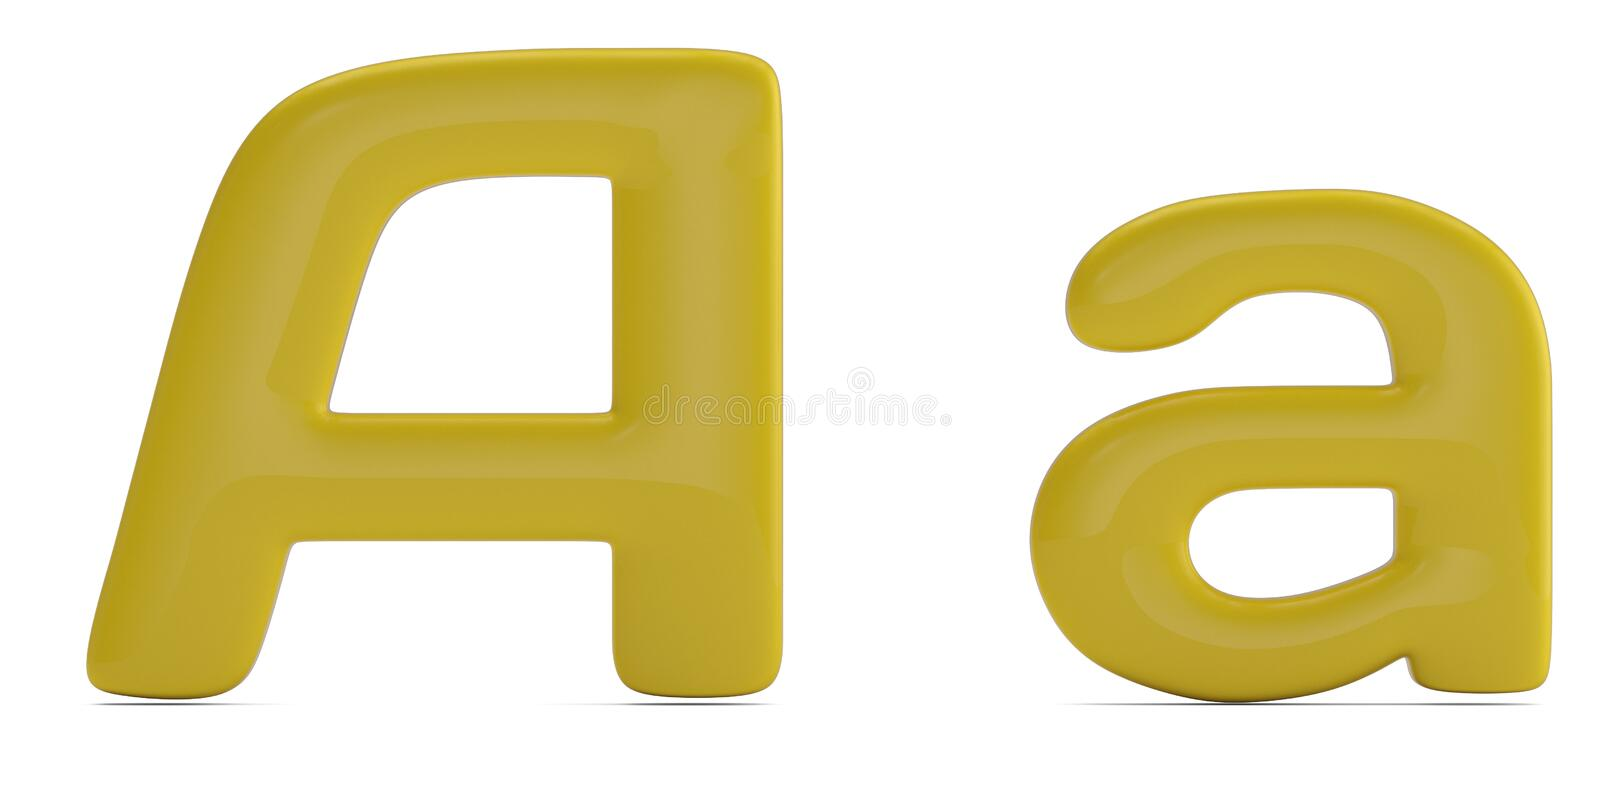 Glossy color solid alphabet letter a isolated on white background. 3D illustration vector illustration